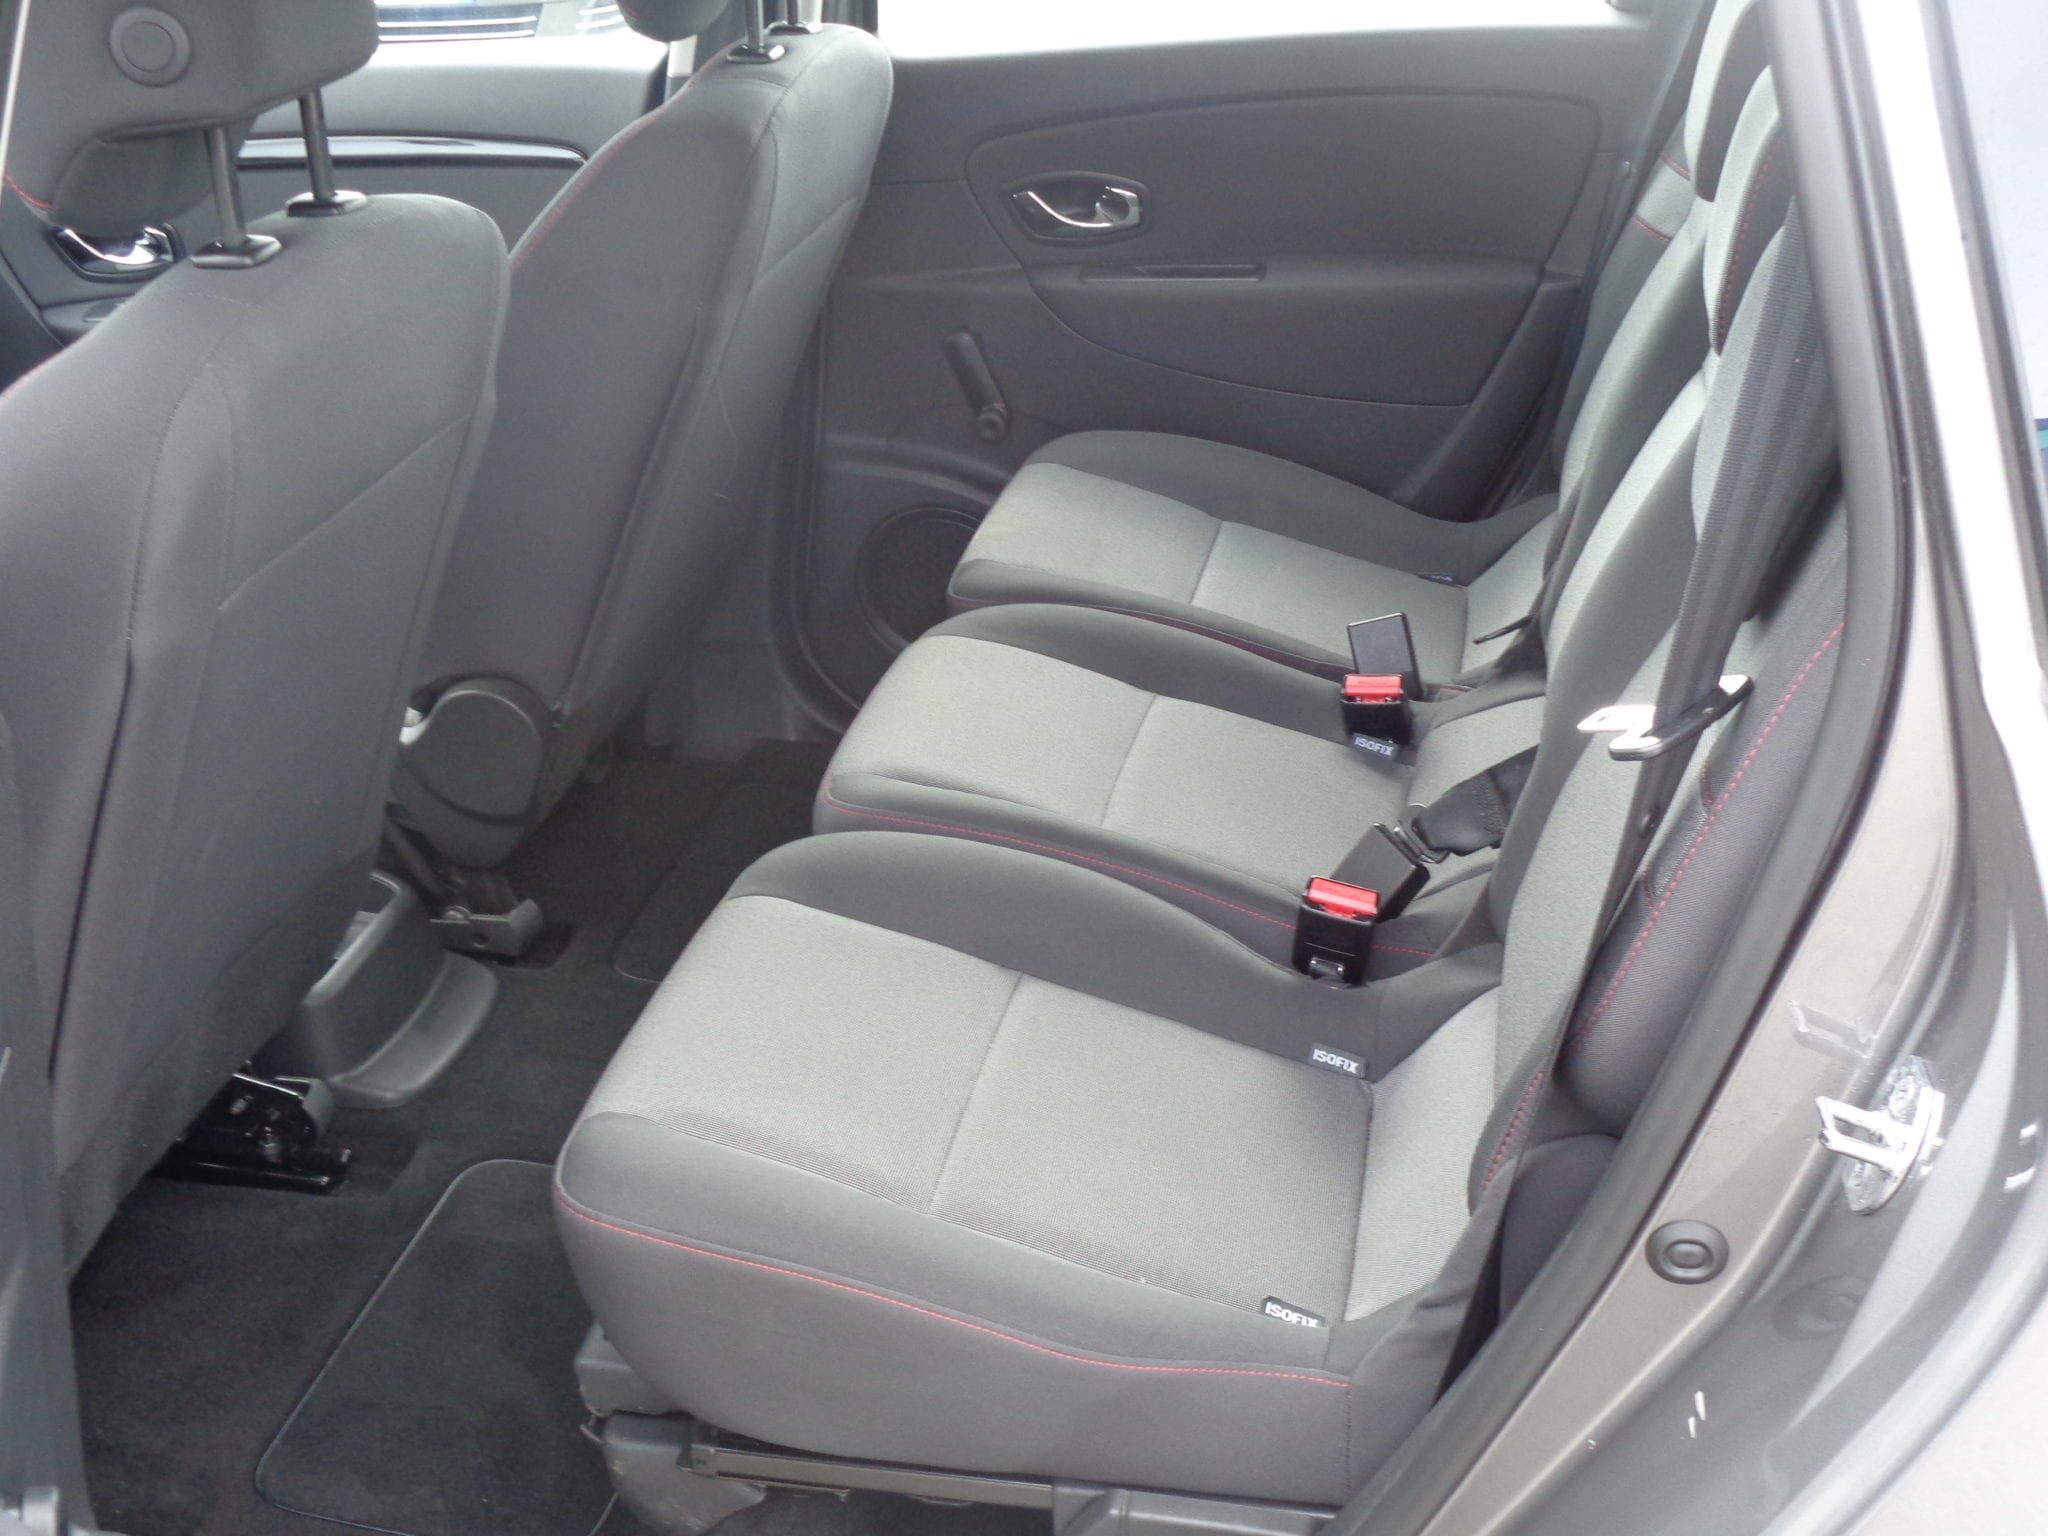 RENAULT GRAND SCENIC DCI 110 ENERGY LIFE ECO2 7 PLACES - Image 4